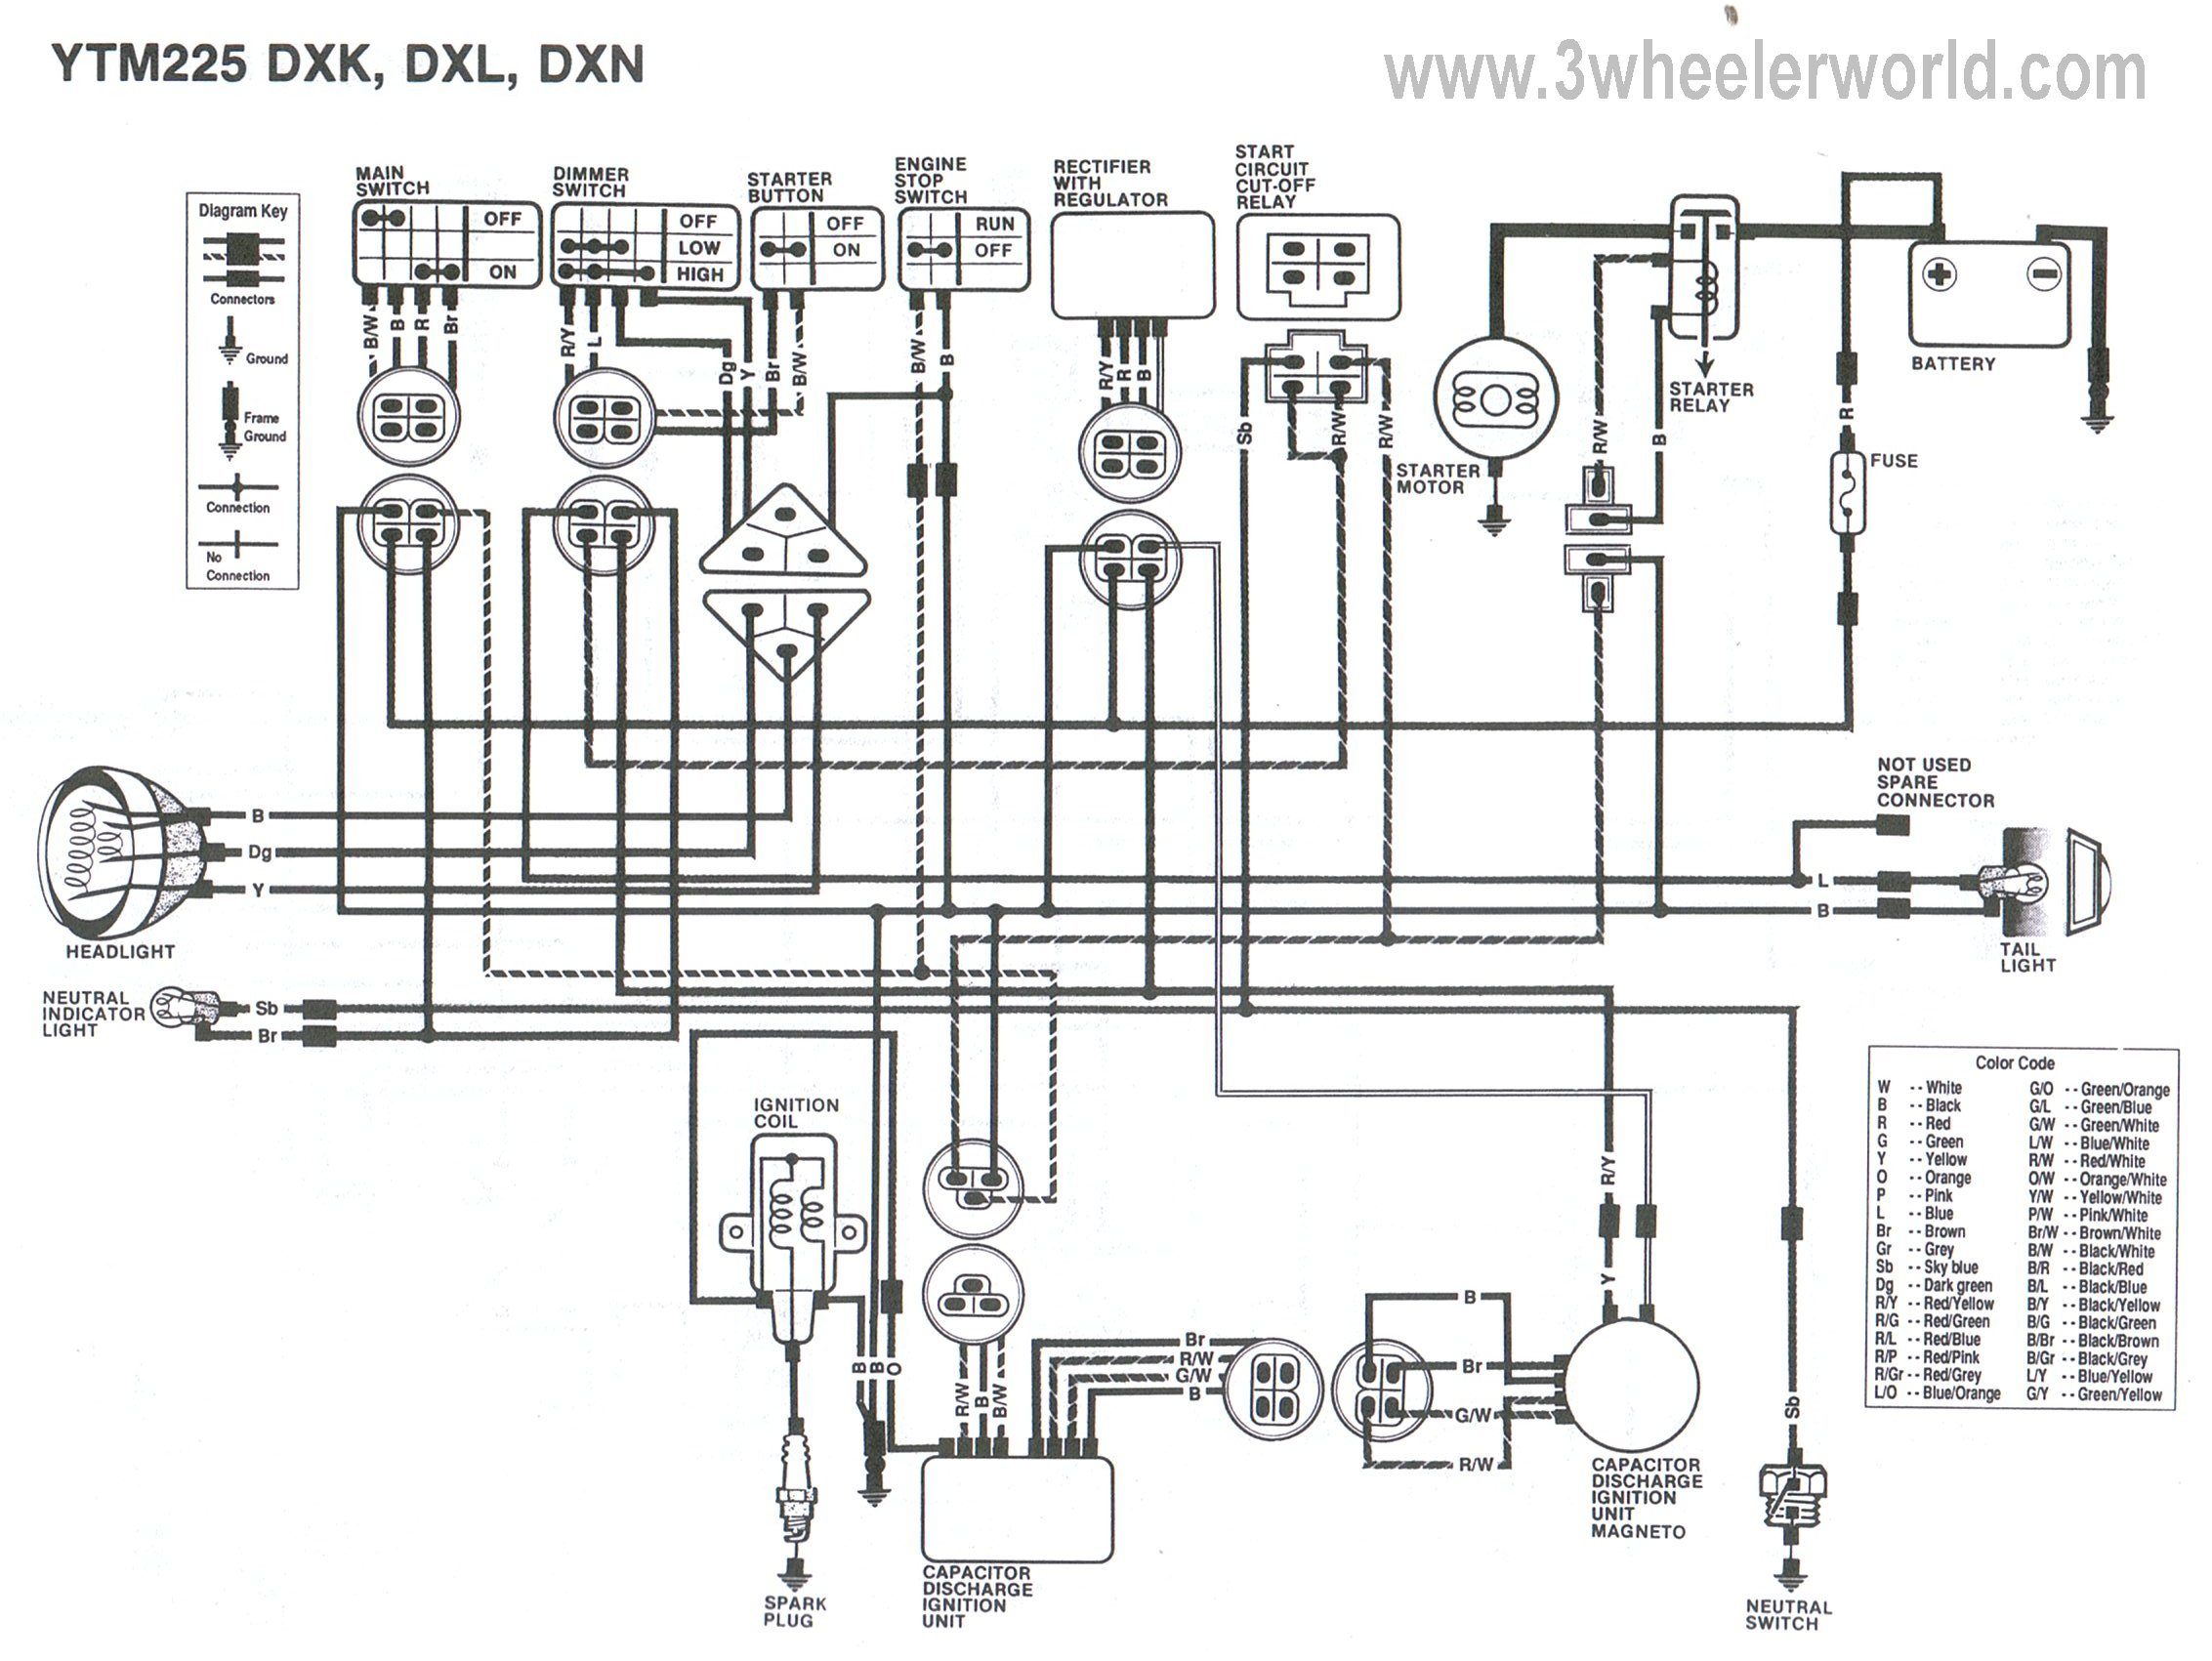 YTM225DXKDXLDXN yamaha wiring diagram wiring diagram and schematic design yamaha zuma wiring diagram at soozxer.org